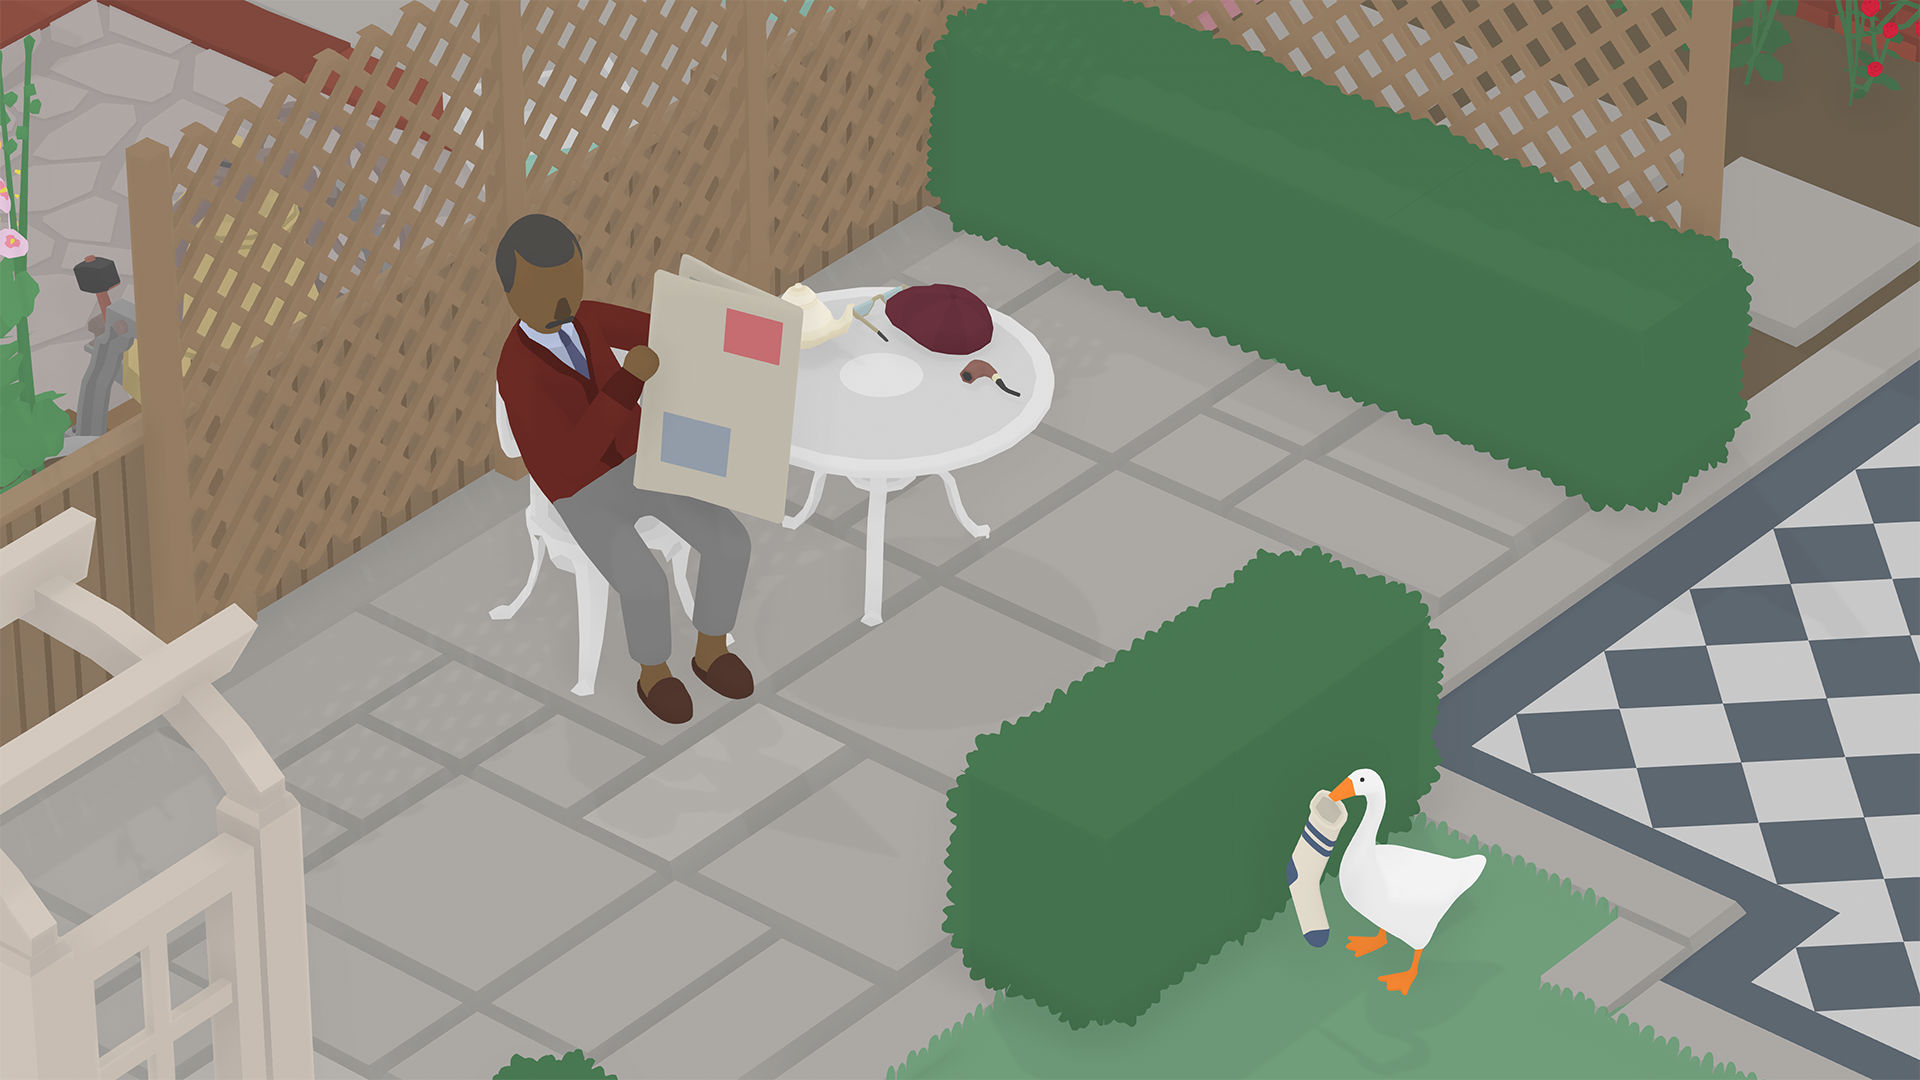 Untitled Goose Game developer catered to players who 'look for ways of making mischief' screenshot